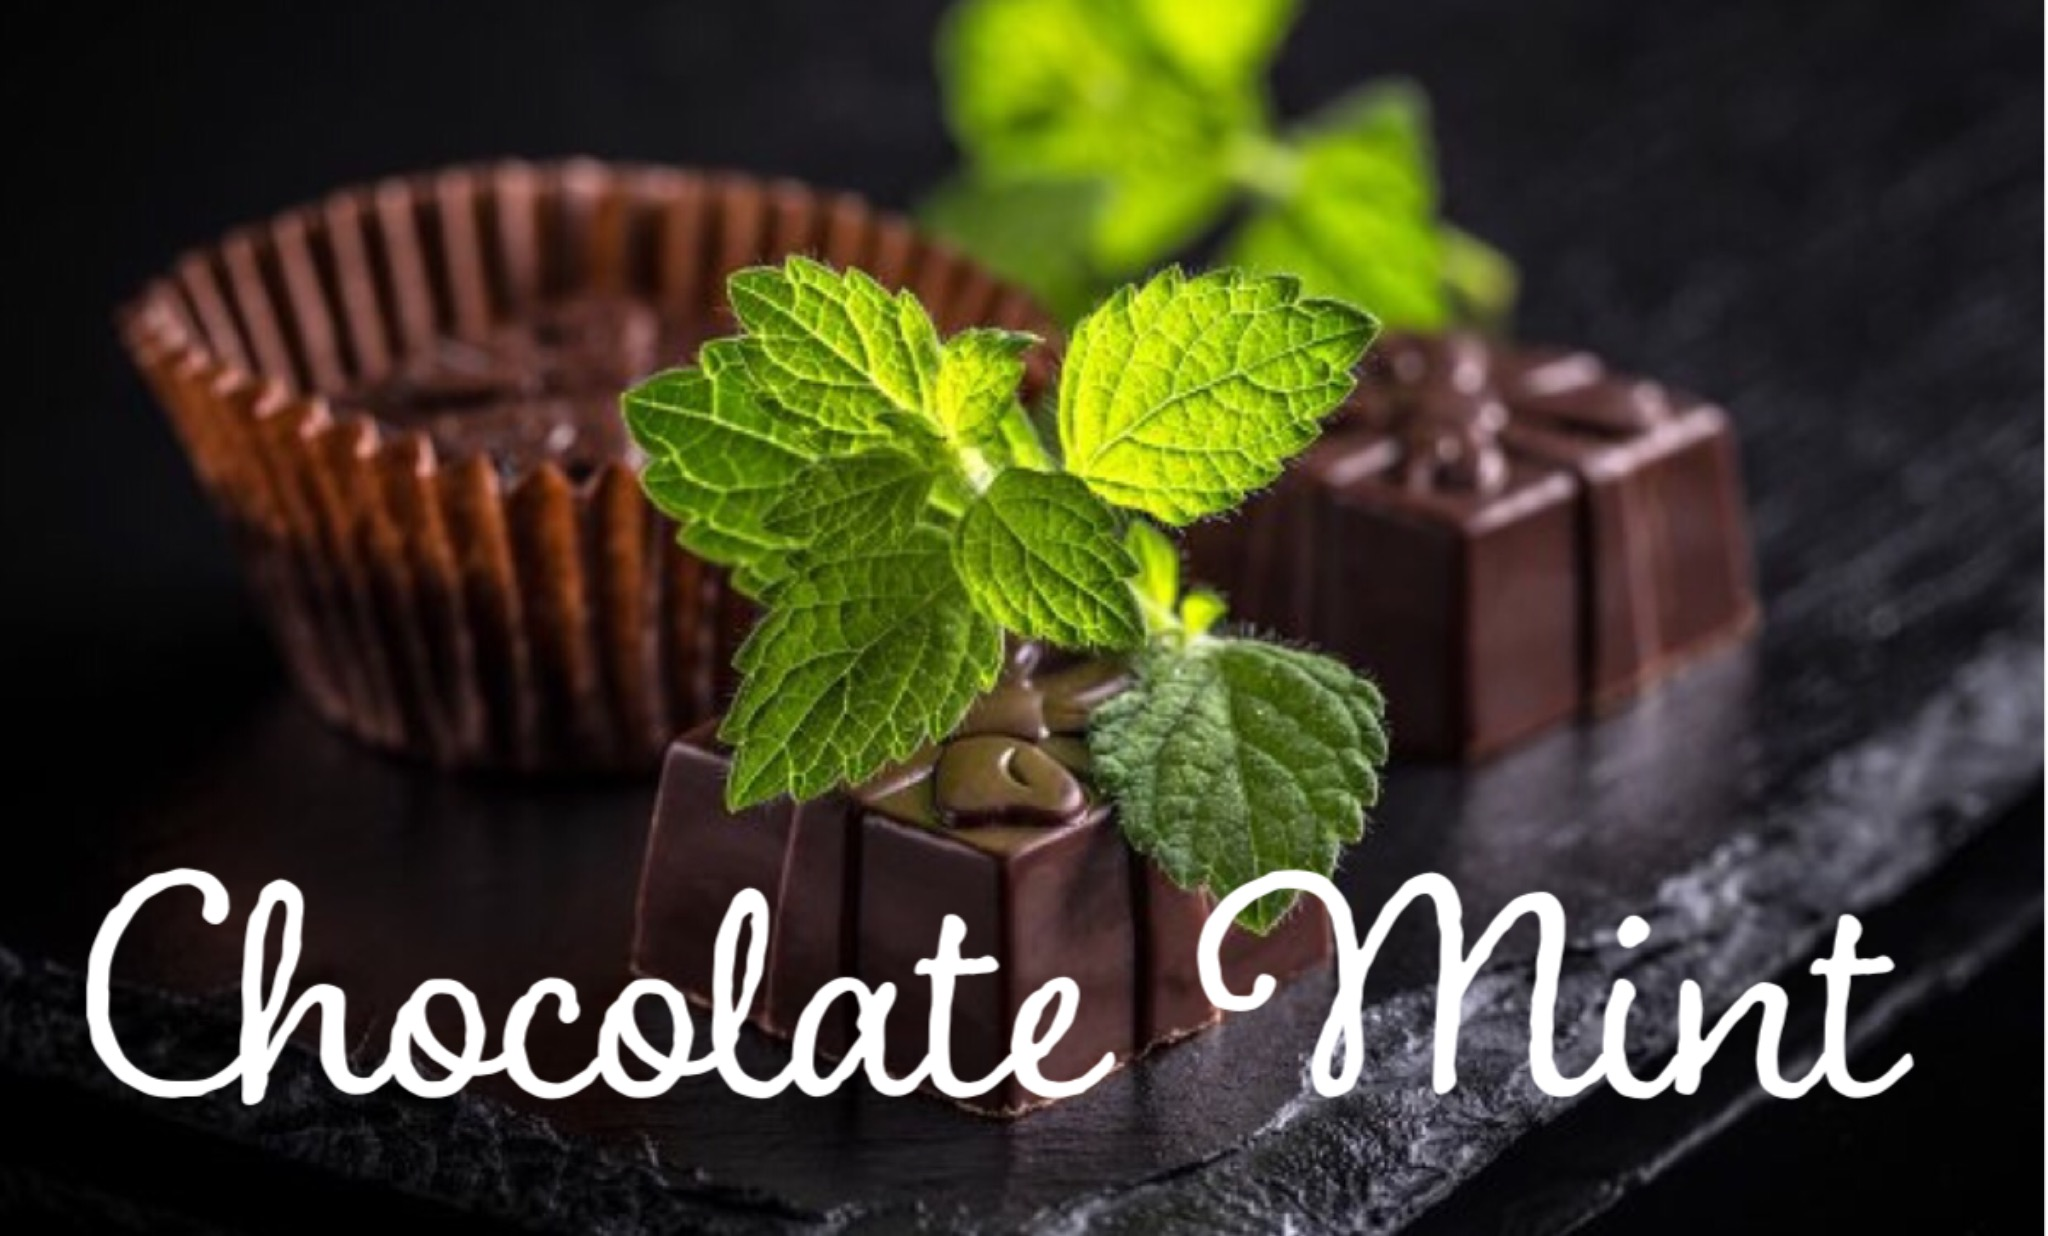 Sweet milk chocolate and refreshing peppermint.